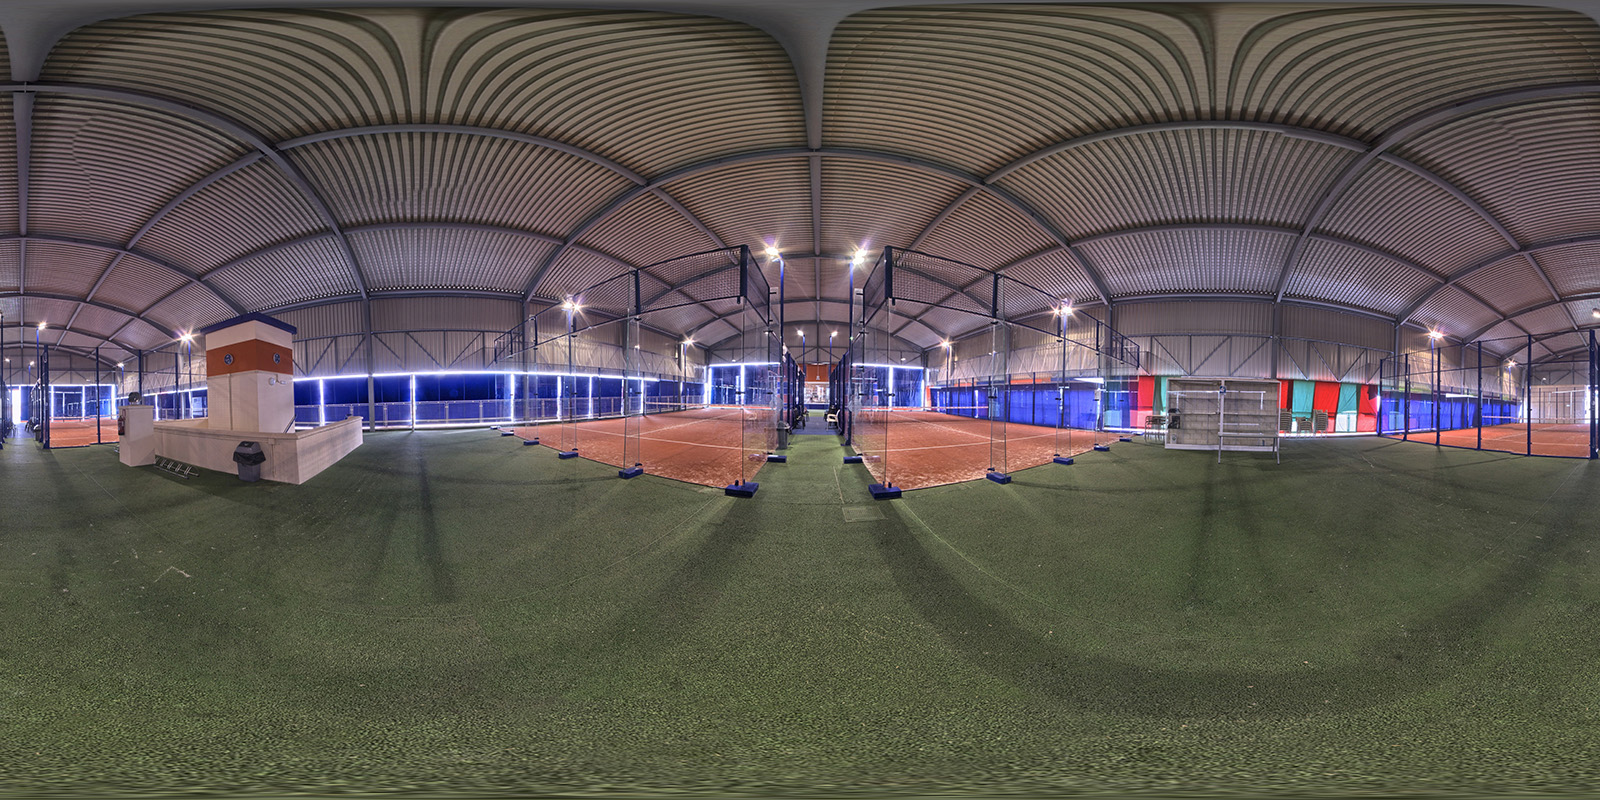 club_padel_silo_recortada